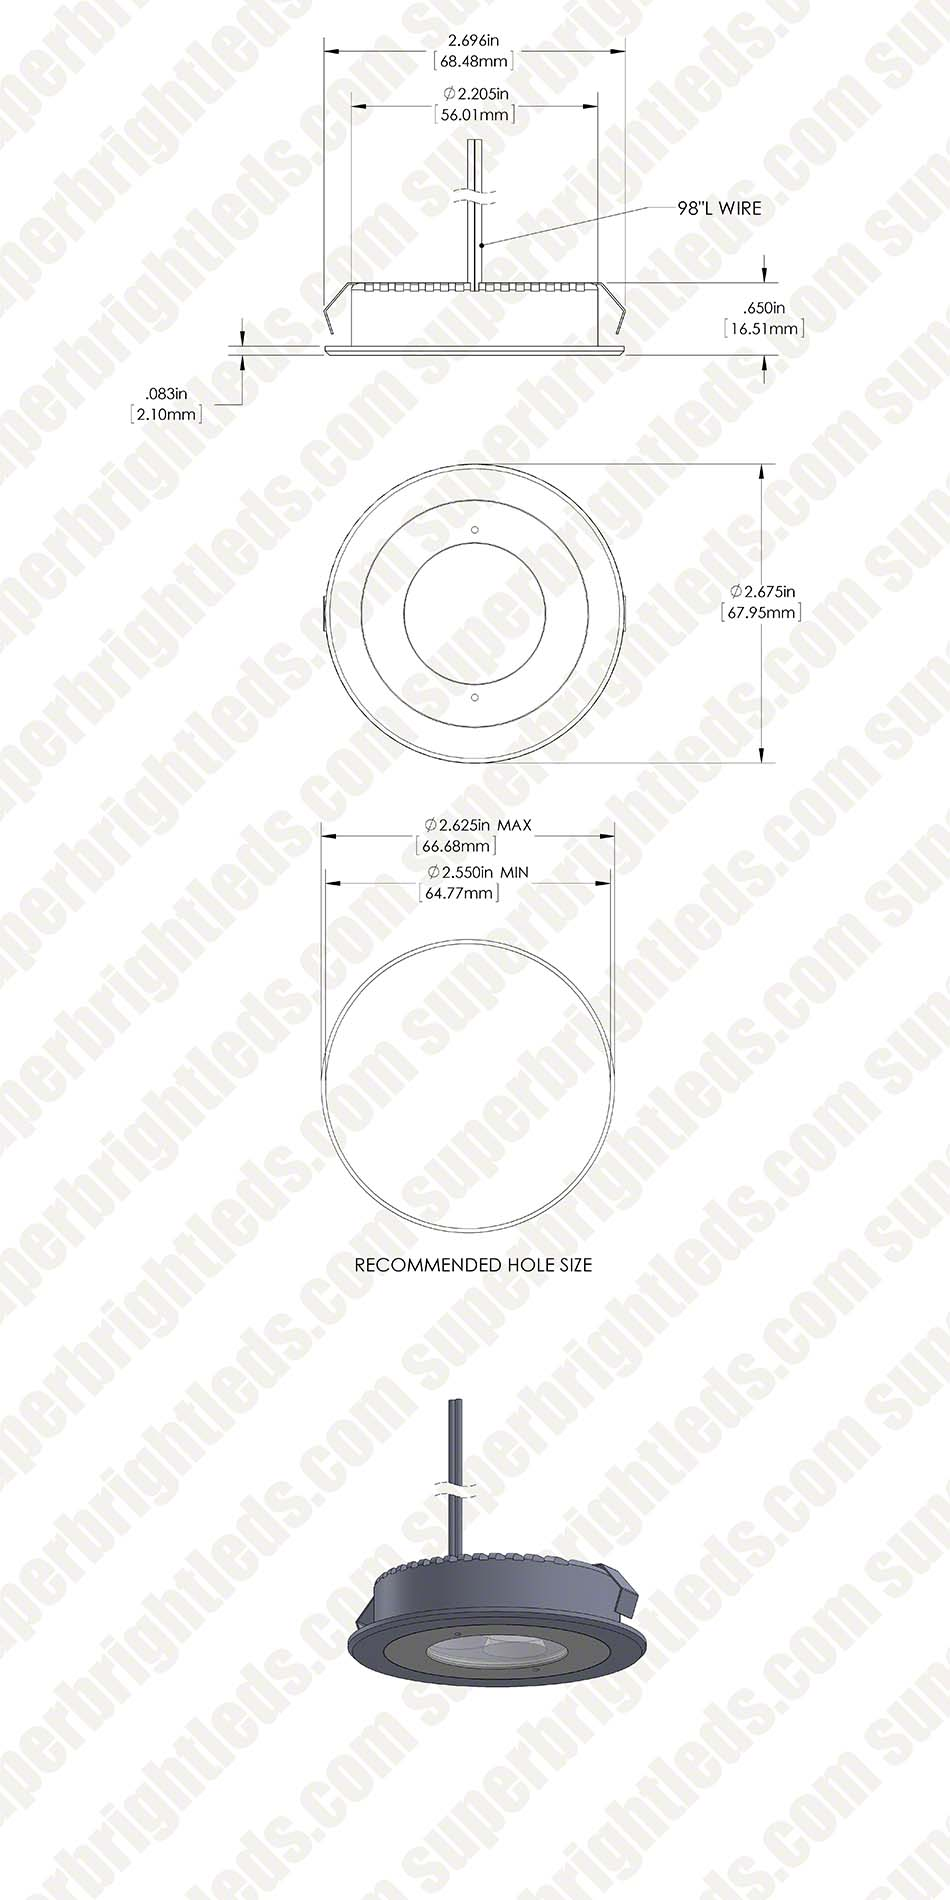 Led Recessed Light Fixture 25 Watt Equivalent 235 Lumens Super Cree Lighting Wiring Diagram 3 Xpe